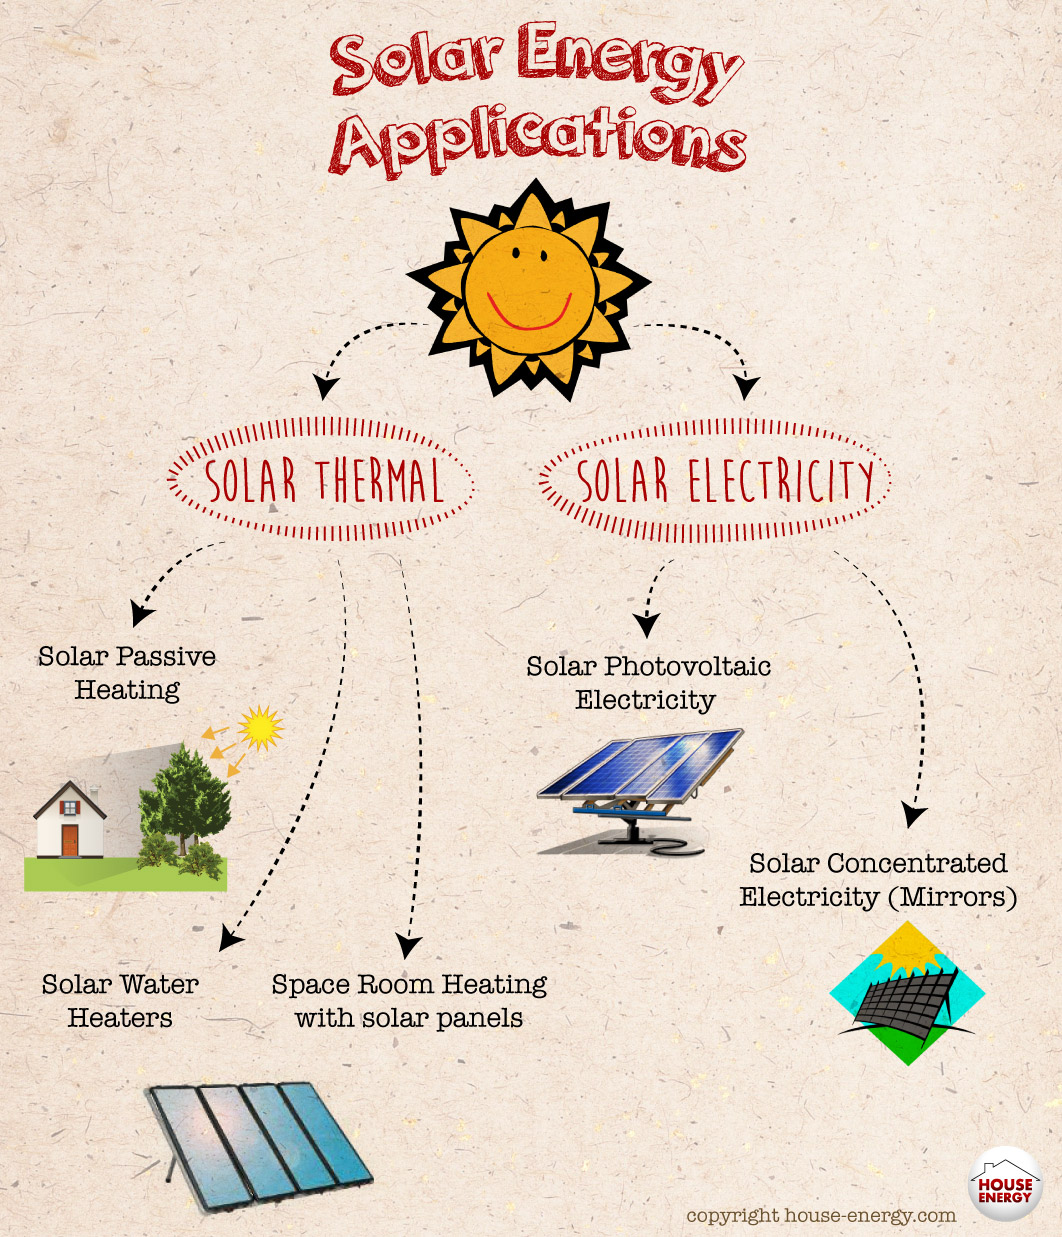 Solar Energy Applications in homes and buildings & Types